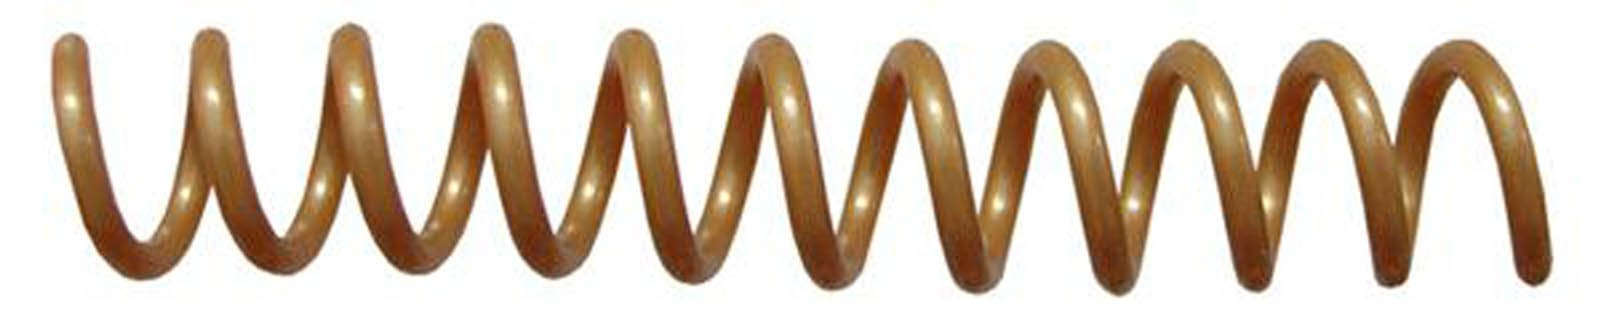 7mm (9/32) Gold Coil Bindings (Qty 100) Color: Gold, Model: , Office/School Supply Store